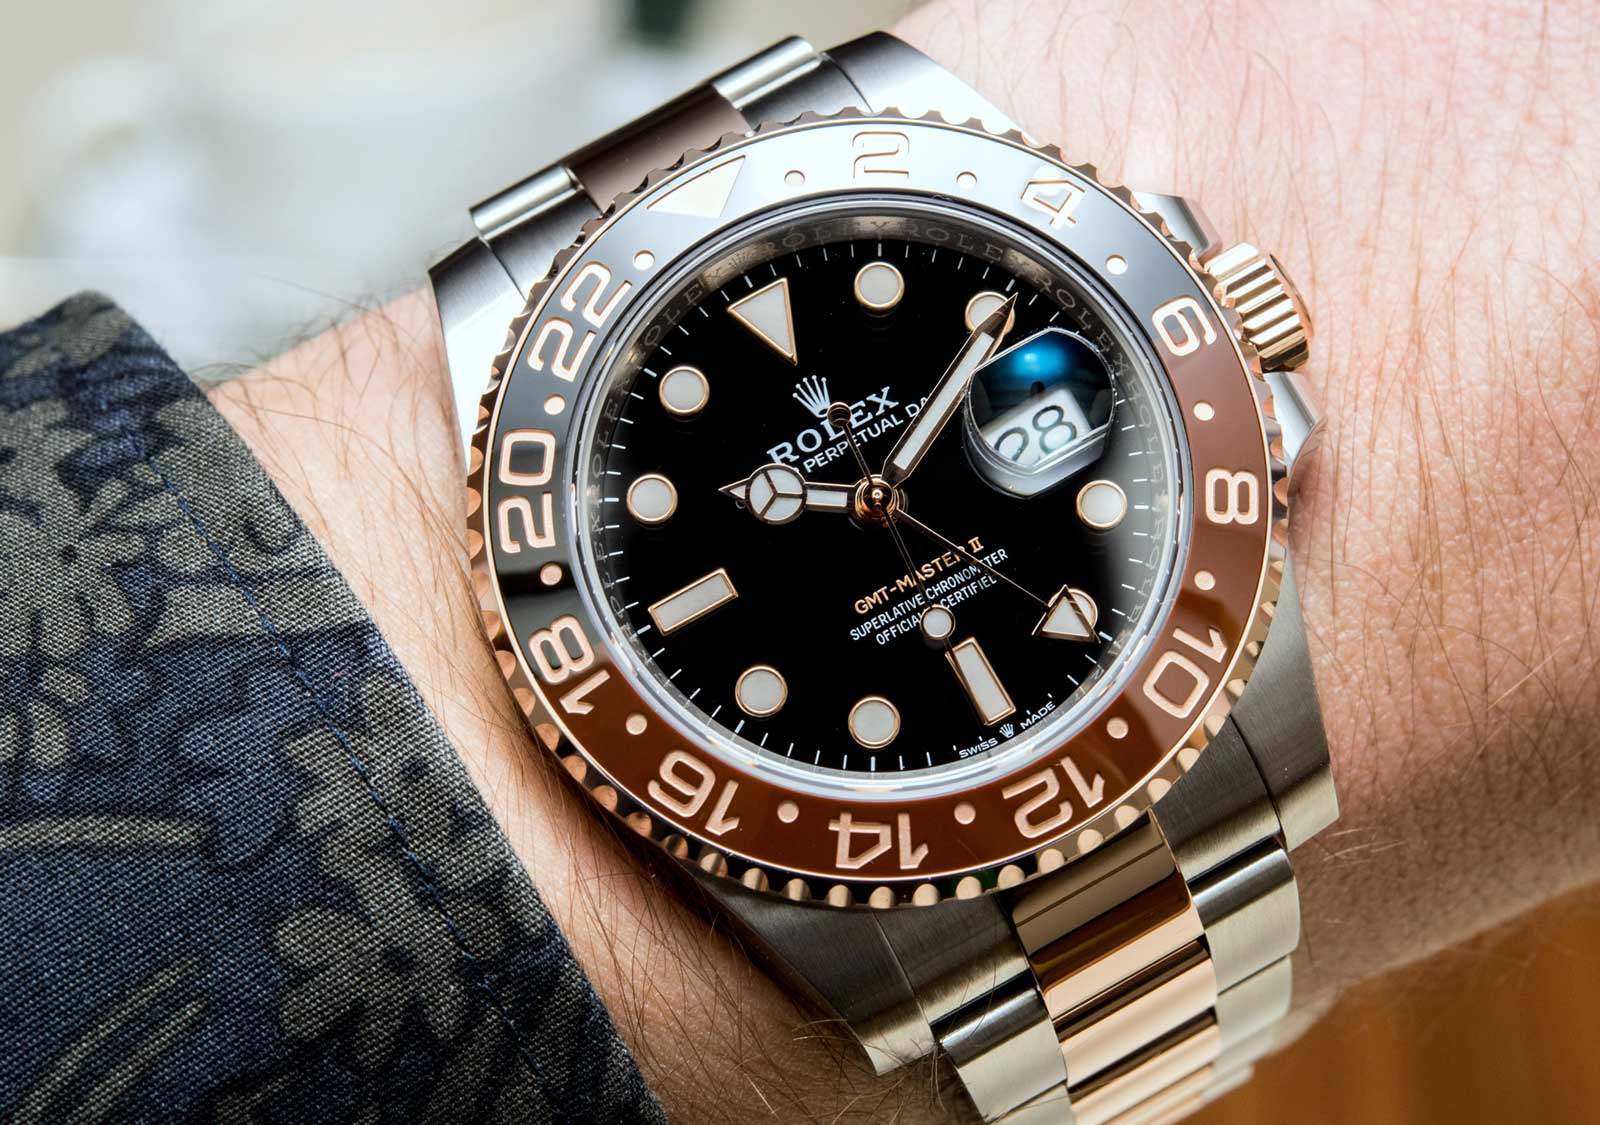 Image result for THE ROLEX GMT-MASTER II EVEROSE REFERENCE 126715CHNR